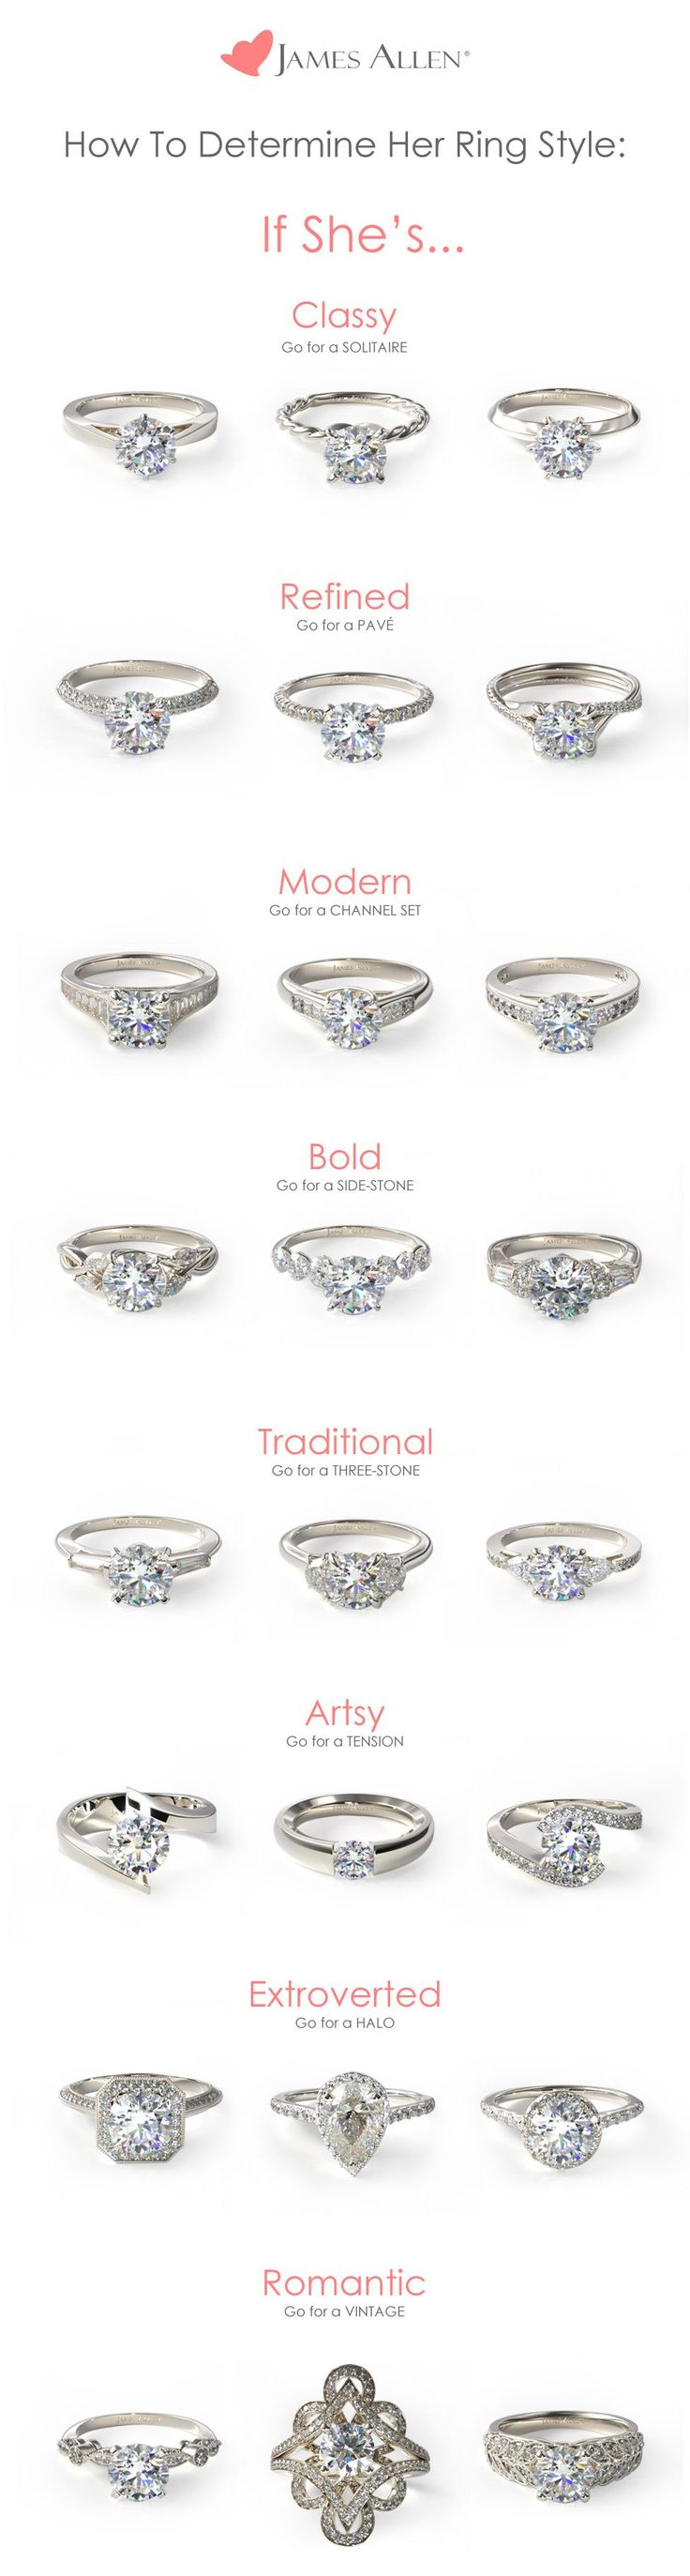 Wicked 50+ Best Ideas About Amazing Promise Rings https://fashiotopia.com/2017/06/22/50-best-ideas-amazing-promise-rings/ You can even produce some gag gifts which are going to be funny and humorous. A gift does not have to be expensive. Picking a present for mum for Mother's Day may be struggle.